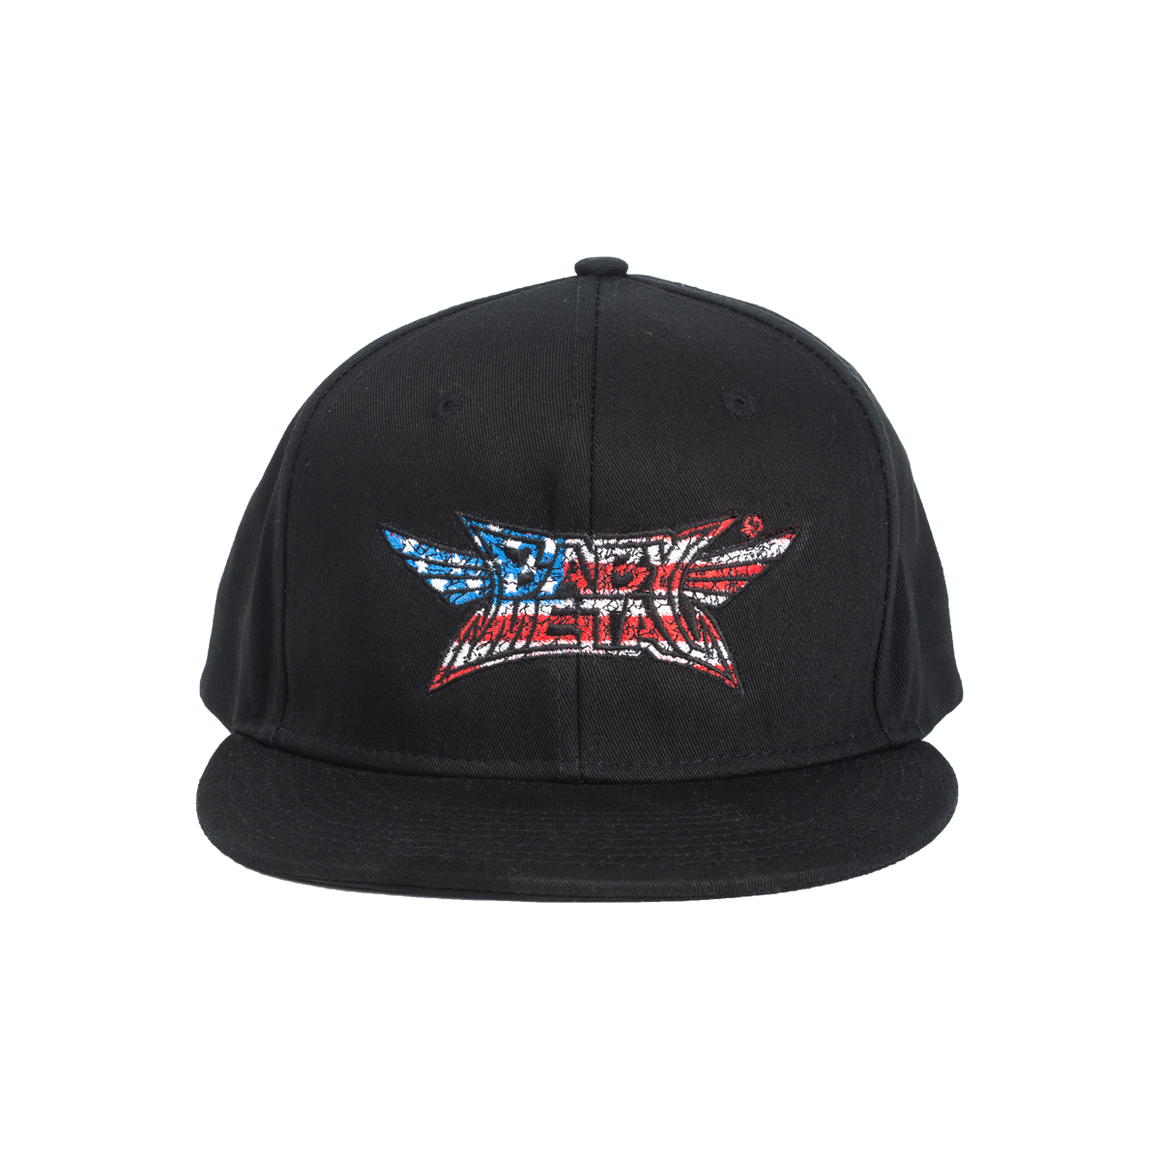 BABYMETAL CRUSH LOGO HAT (STARS AND STRIPES) - BABYMETAL